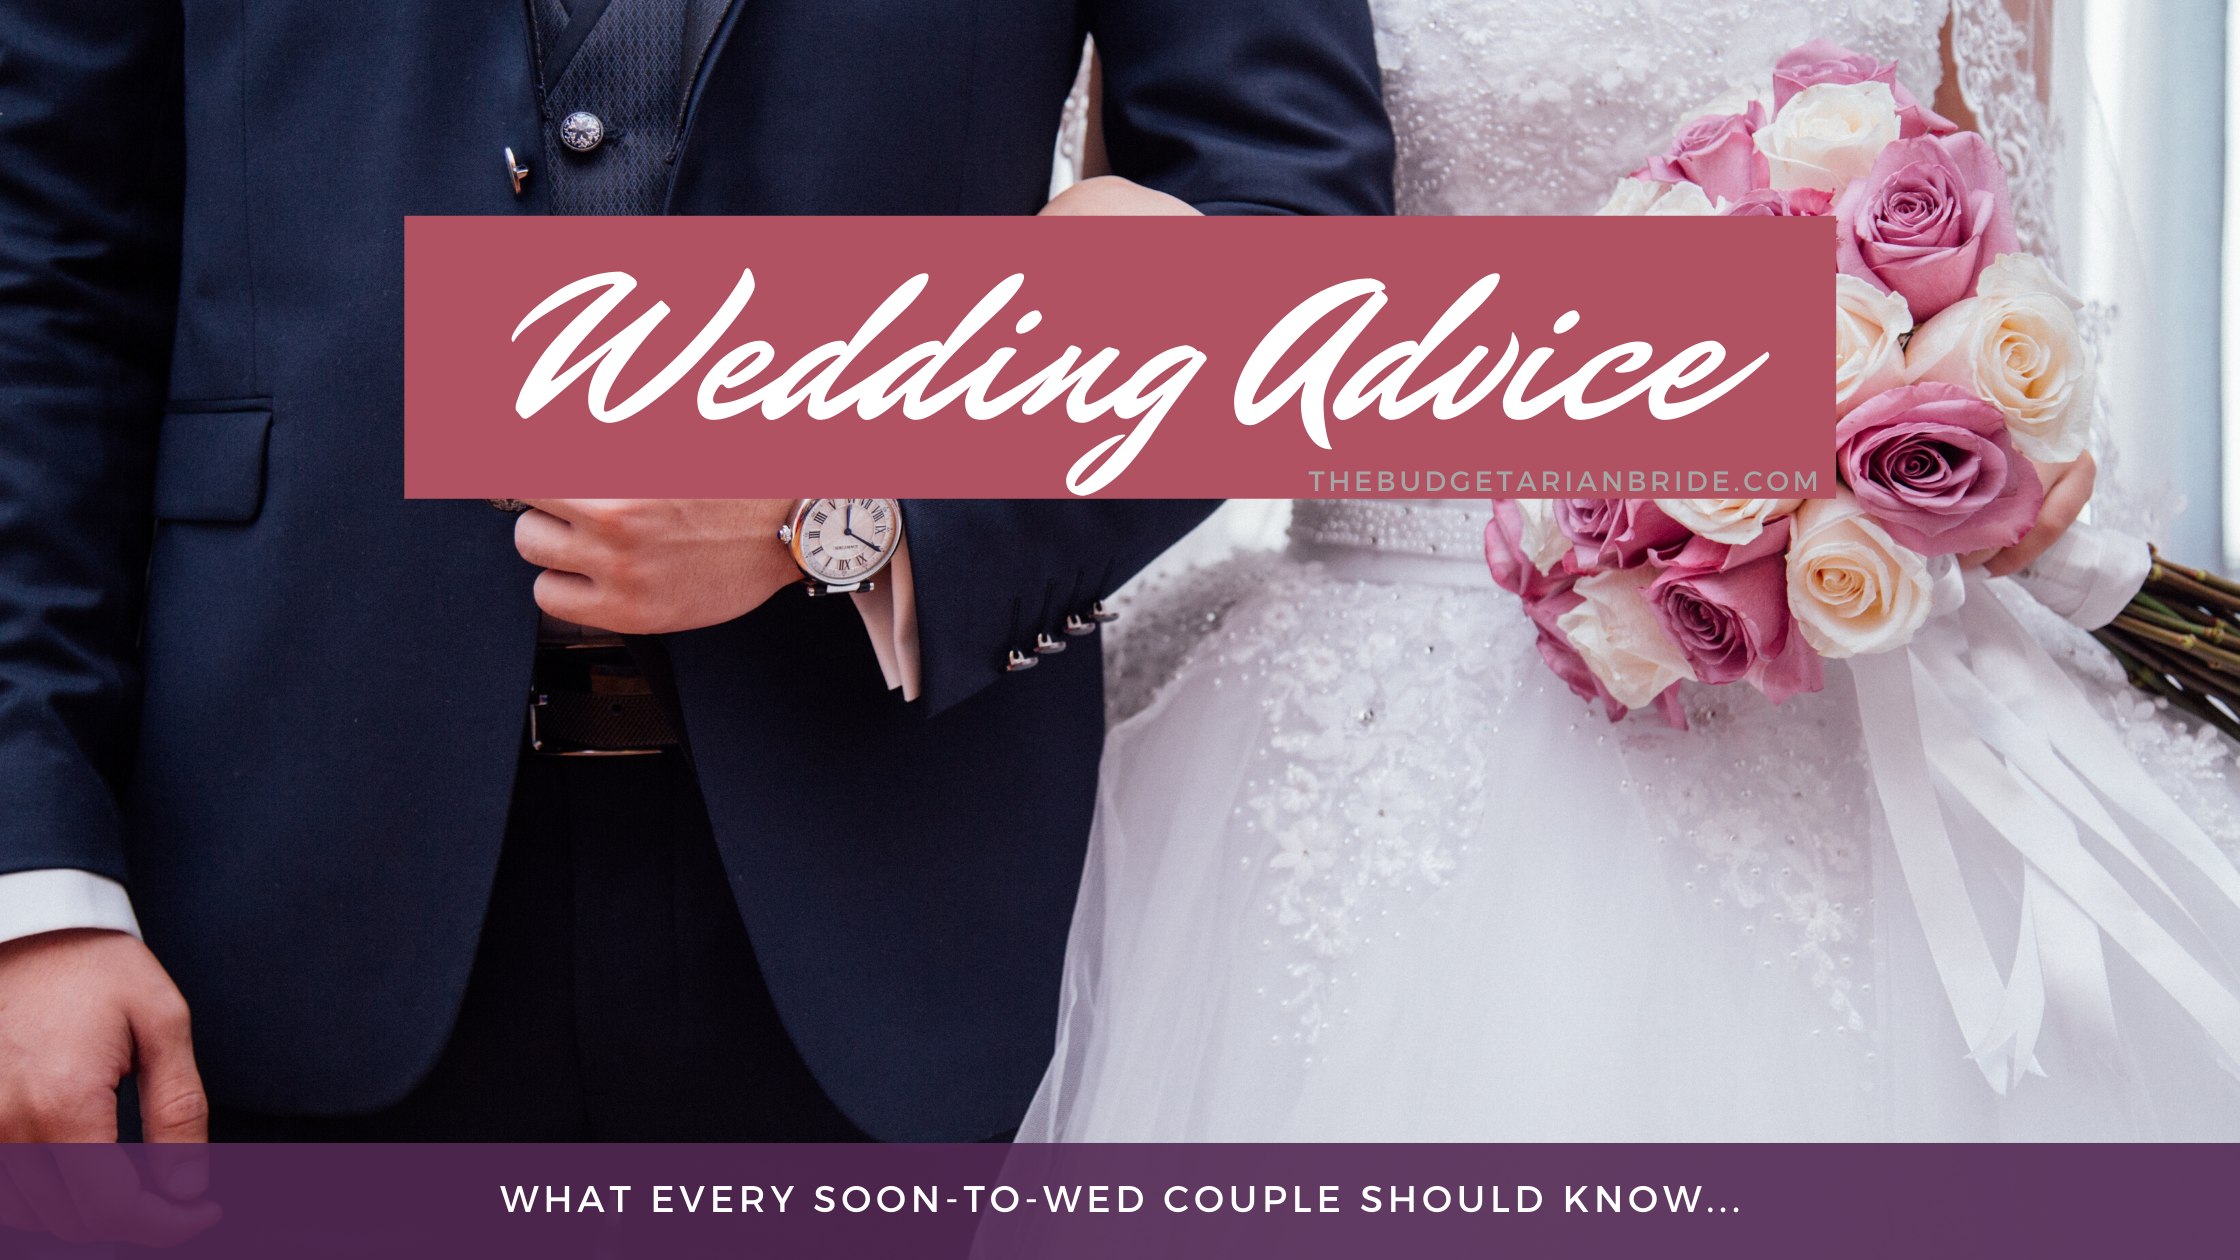 11 Heartfelt Wedding Advice Every Soon-to-Wed Couple Should Read!